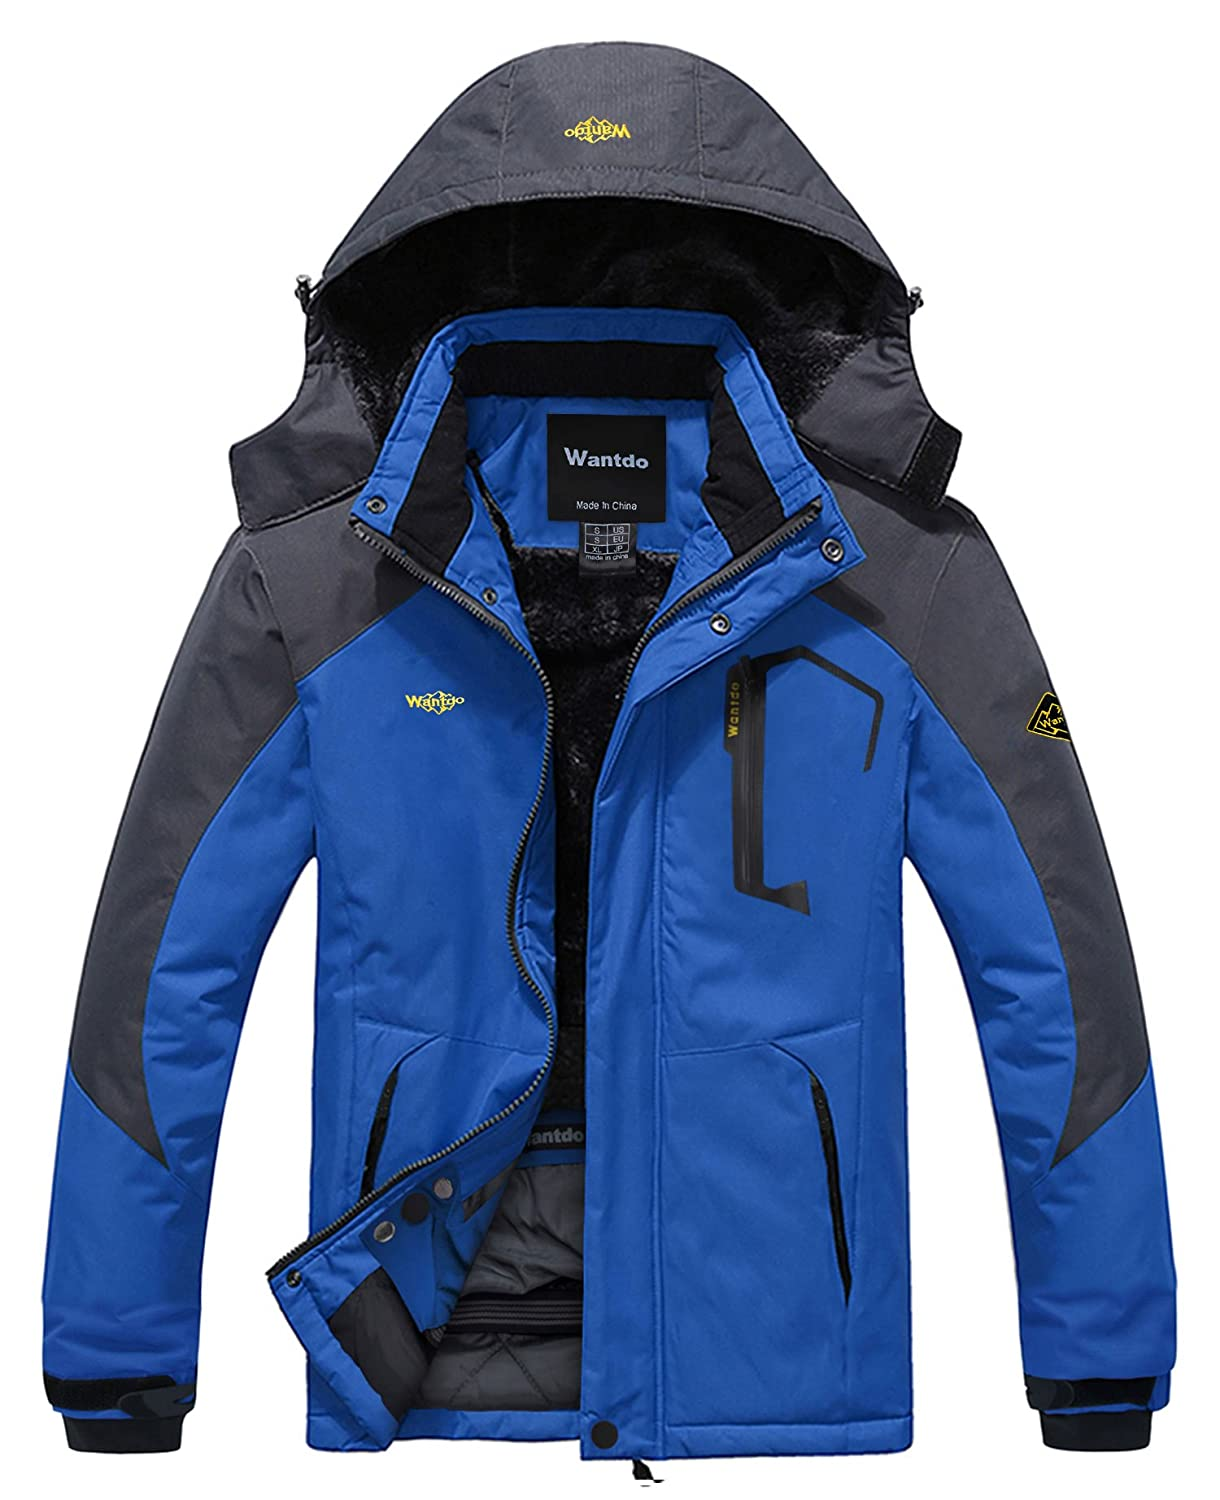 Wantdo Men's Mountain Waterproof Fleece Ski Jacket